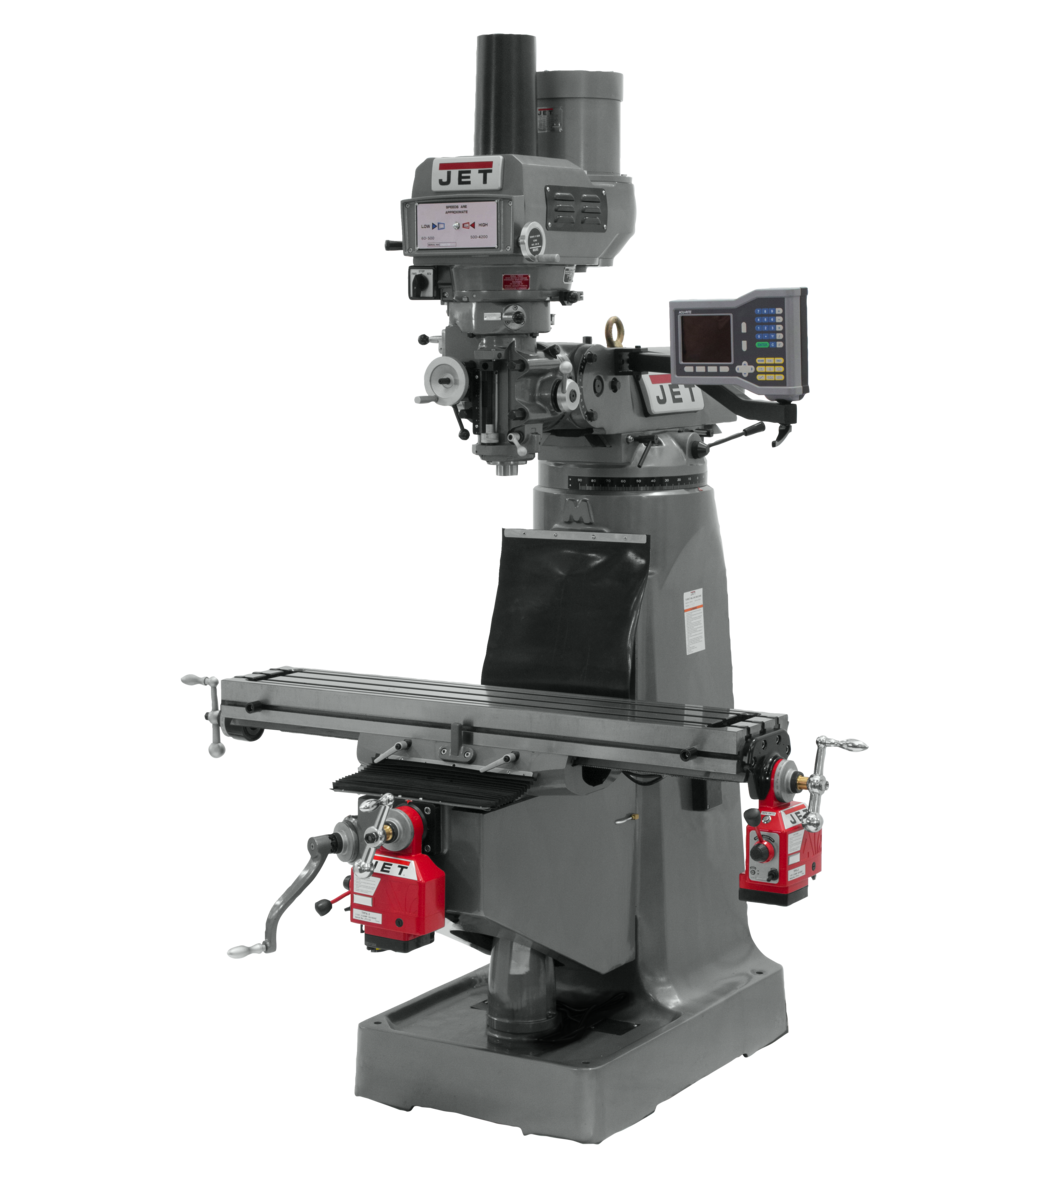 JTM-4VS-1 Mill With ACU-RITE 203 DRO With X and Y-Axis Powerfeeds and Power Draw Bar